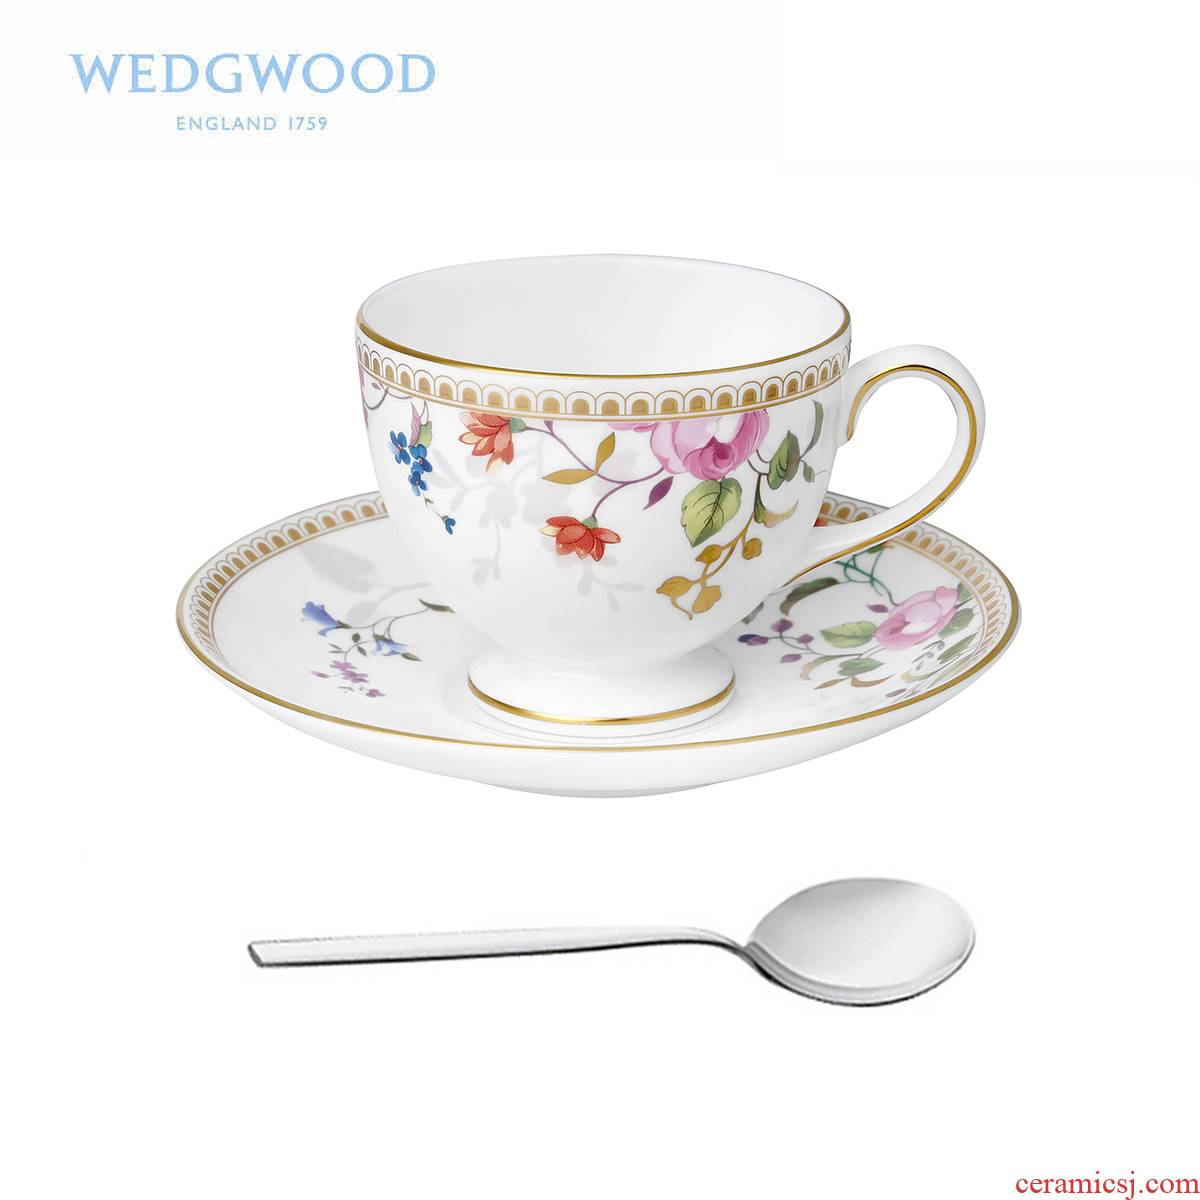 The British Wedgwood Rose Gold Gold Rose ipads porcelain cup standard + WMF tea spoon